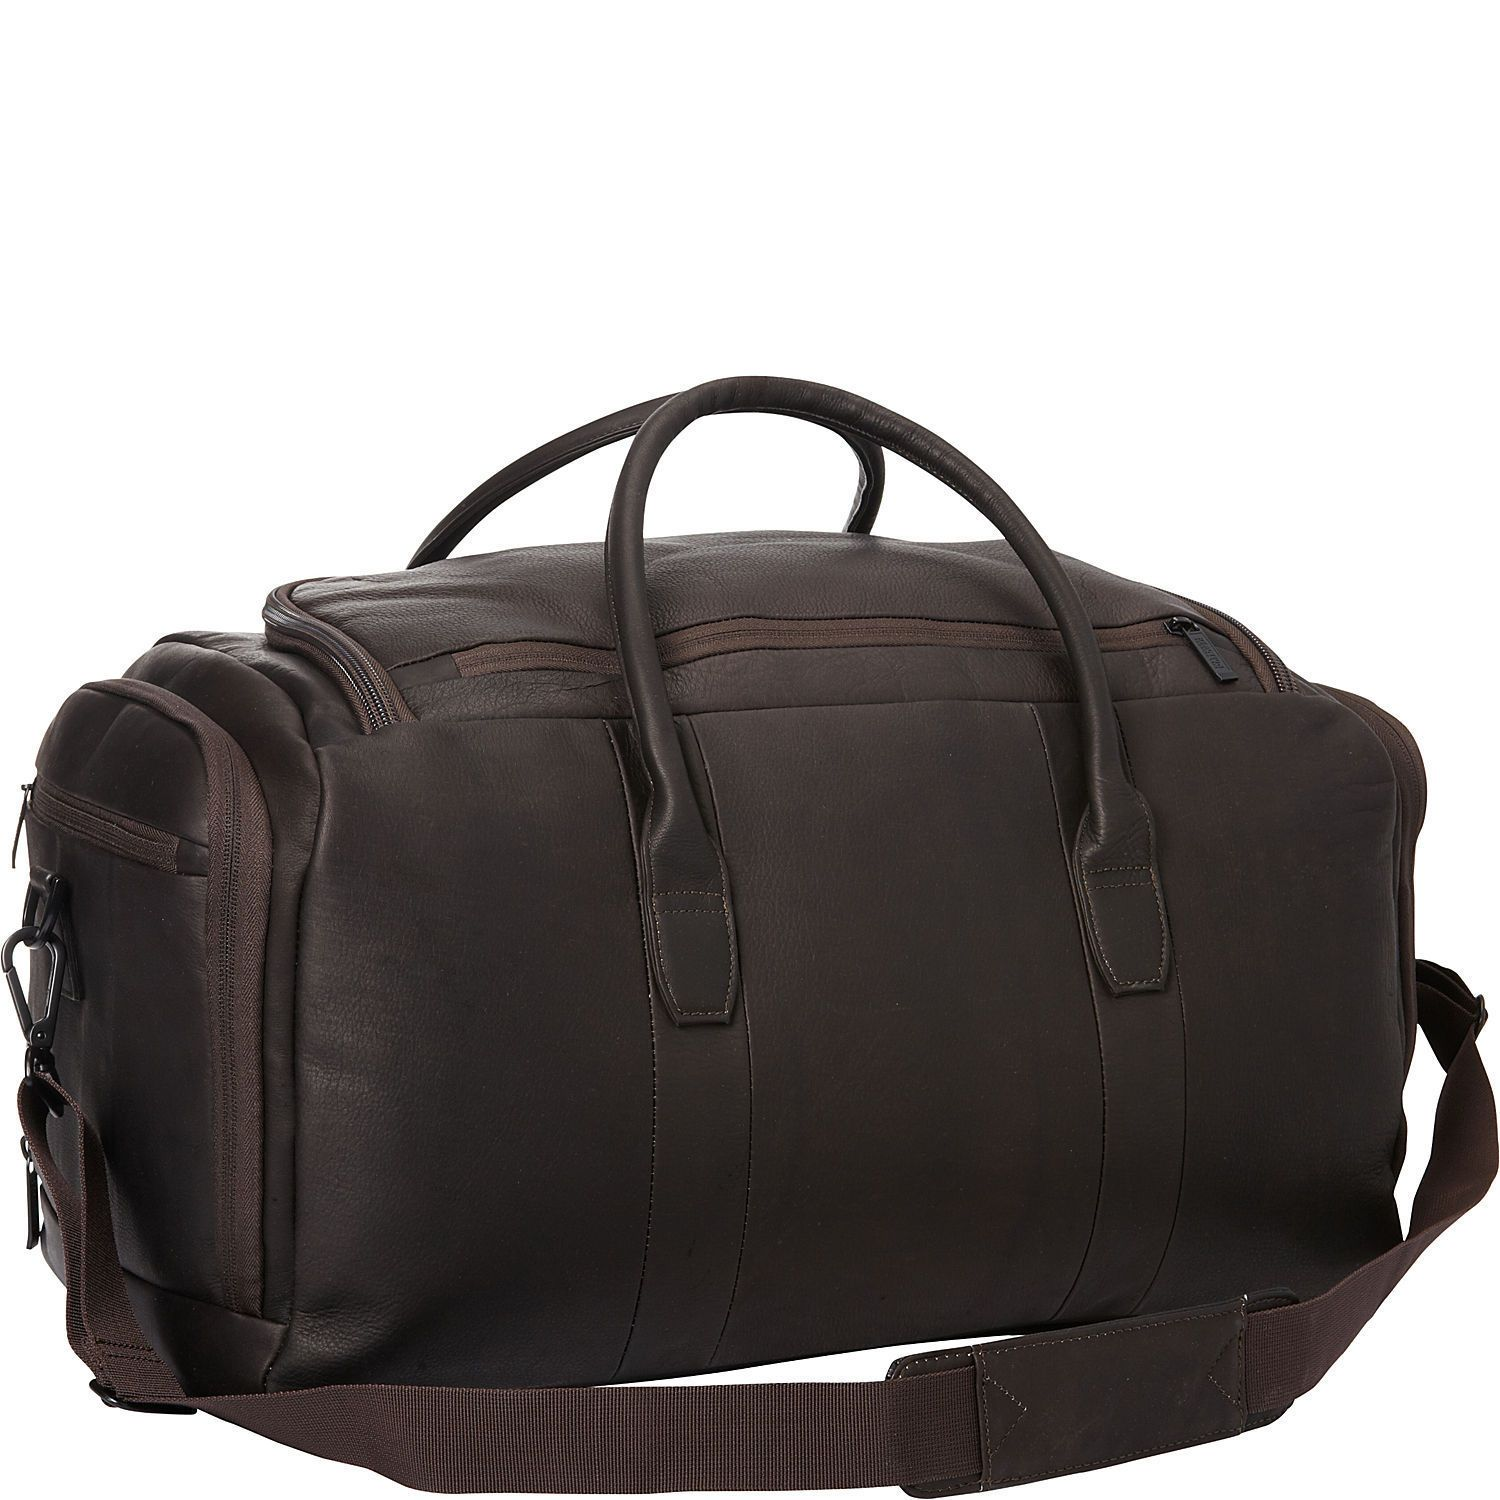 Kenneth Cole Reaction Colombian 20-inch Top Load Duffel Bag